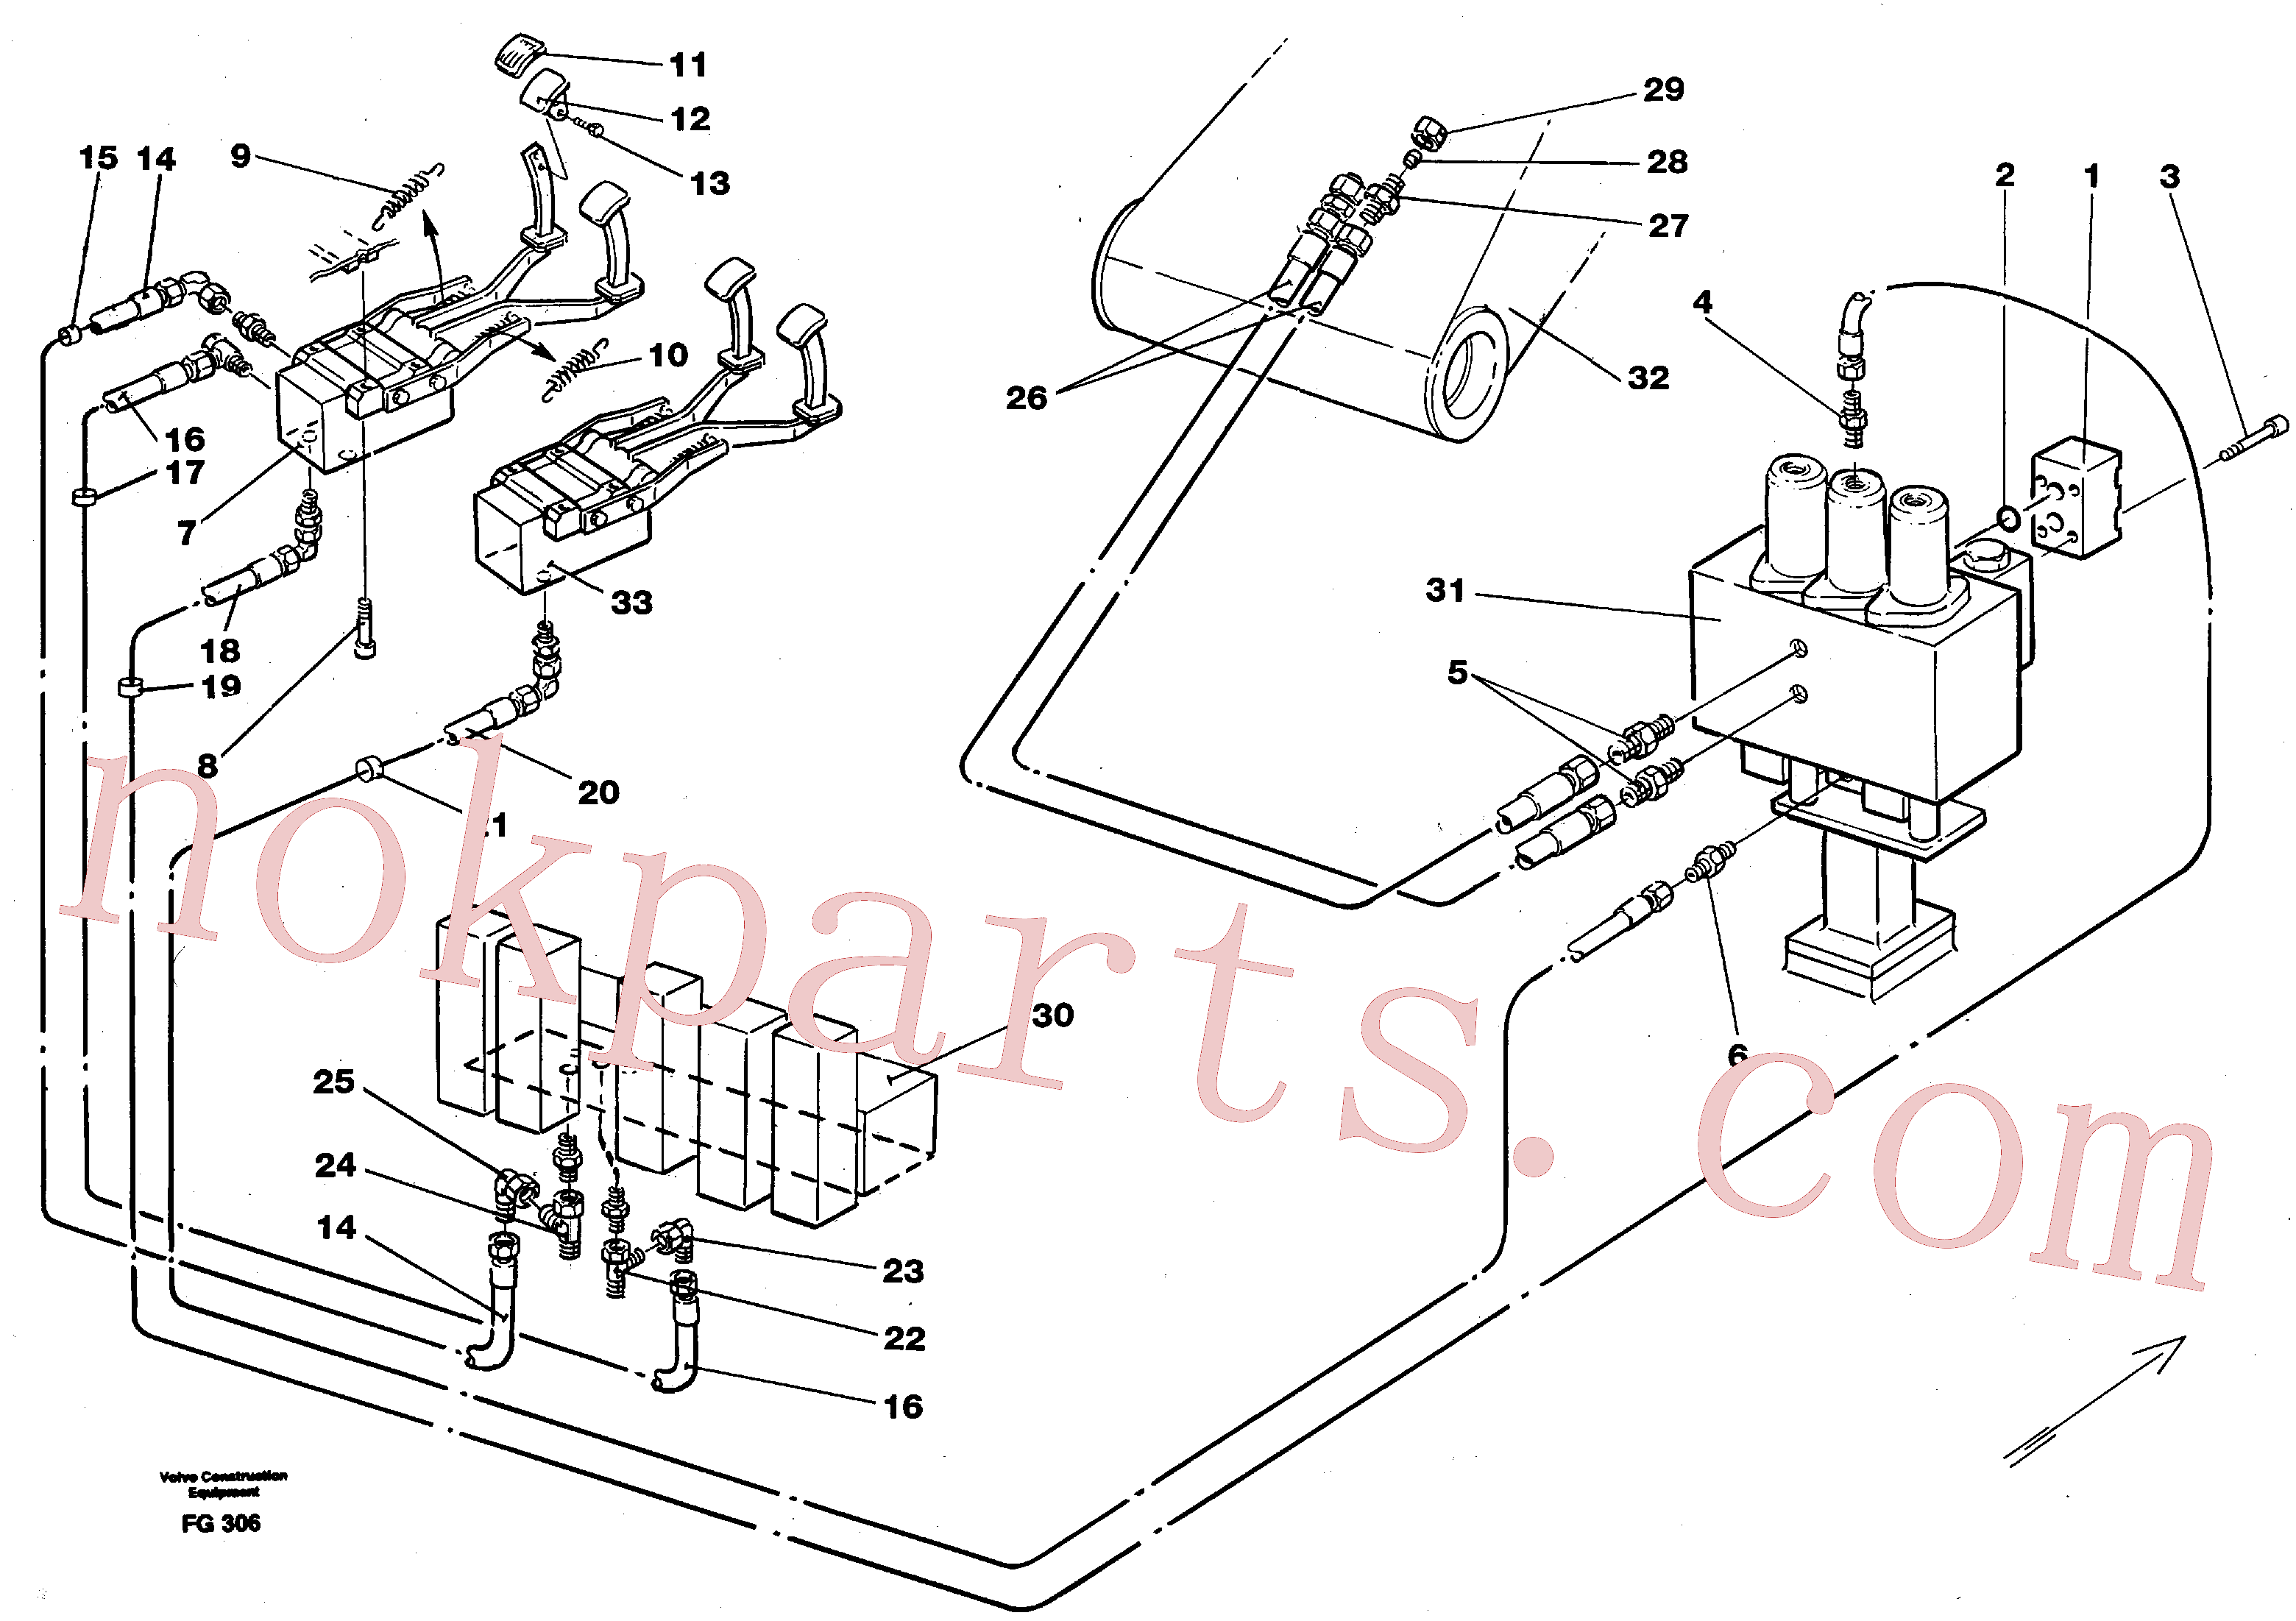 VOE14213152 for Volvo Slope bucket/rotating grab hydraulics in base machine(FG306 assembly)